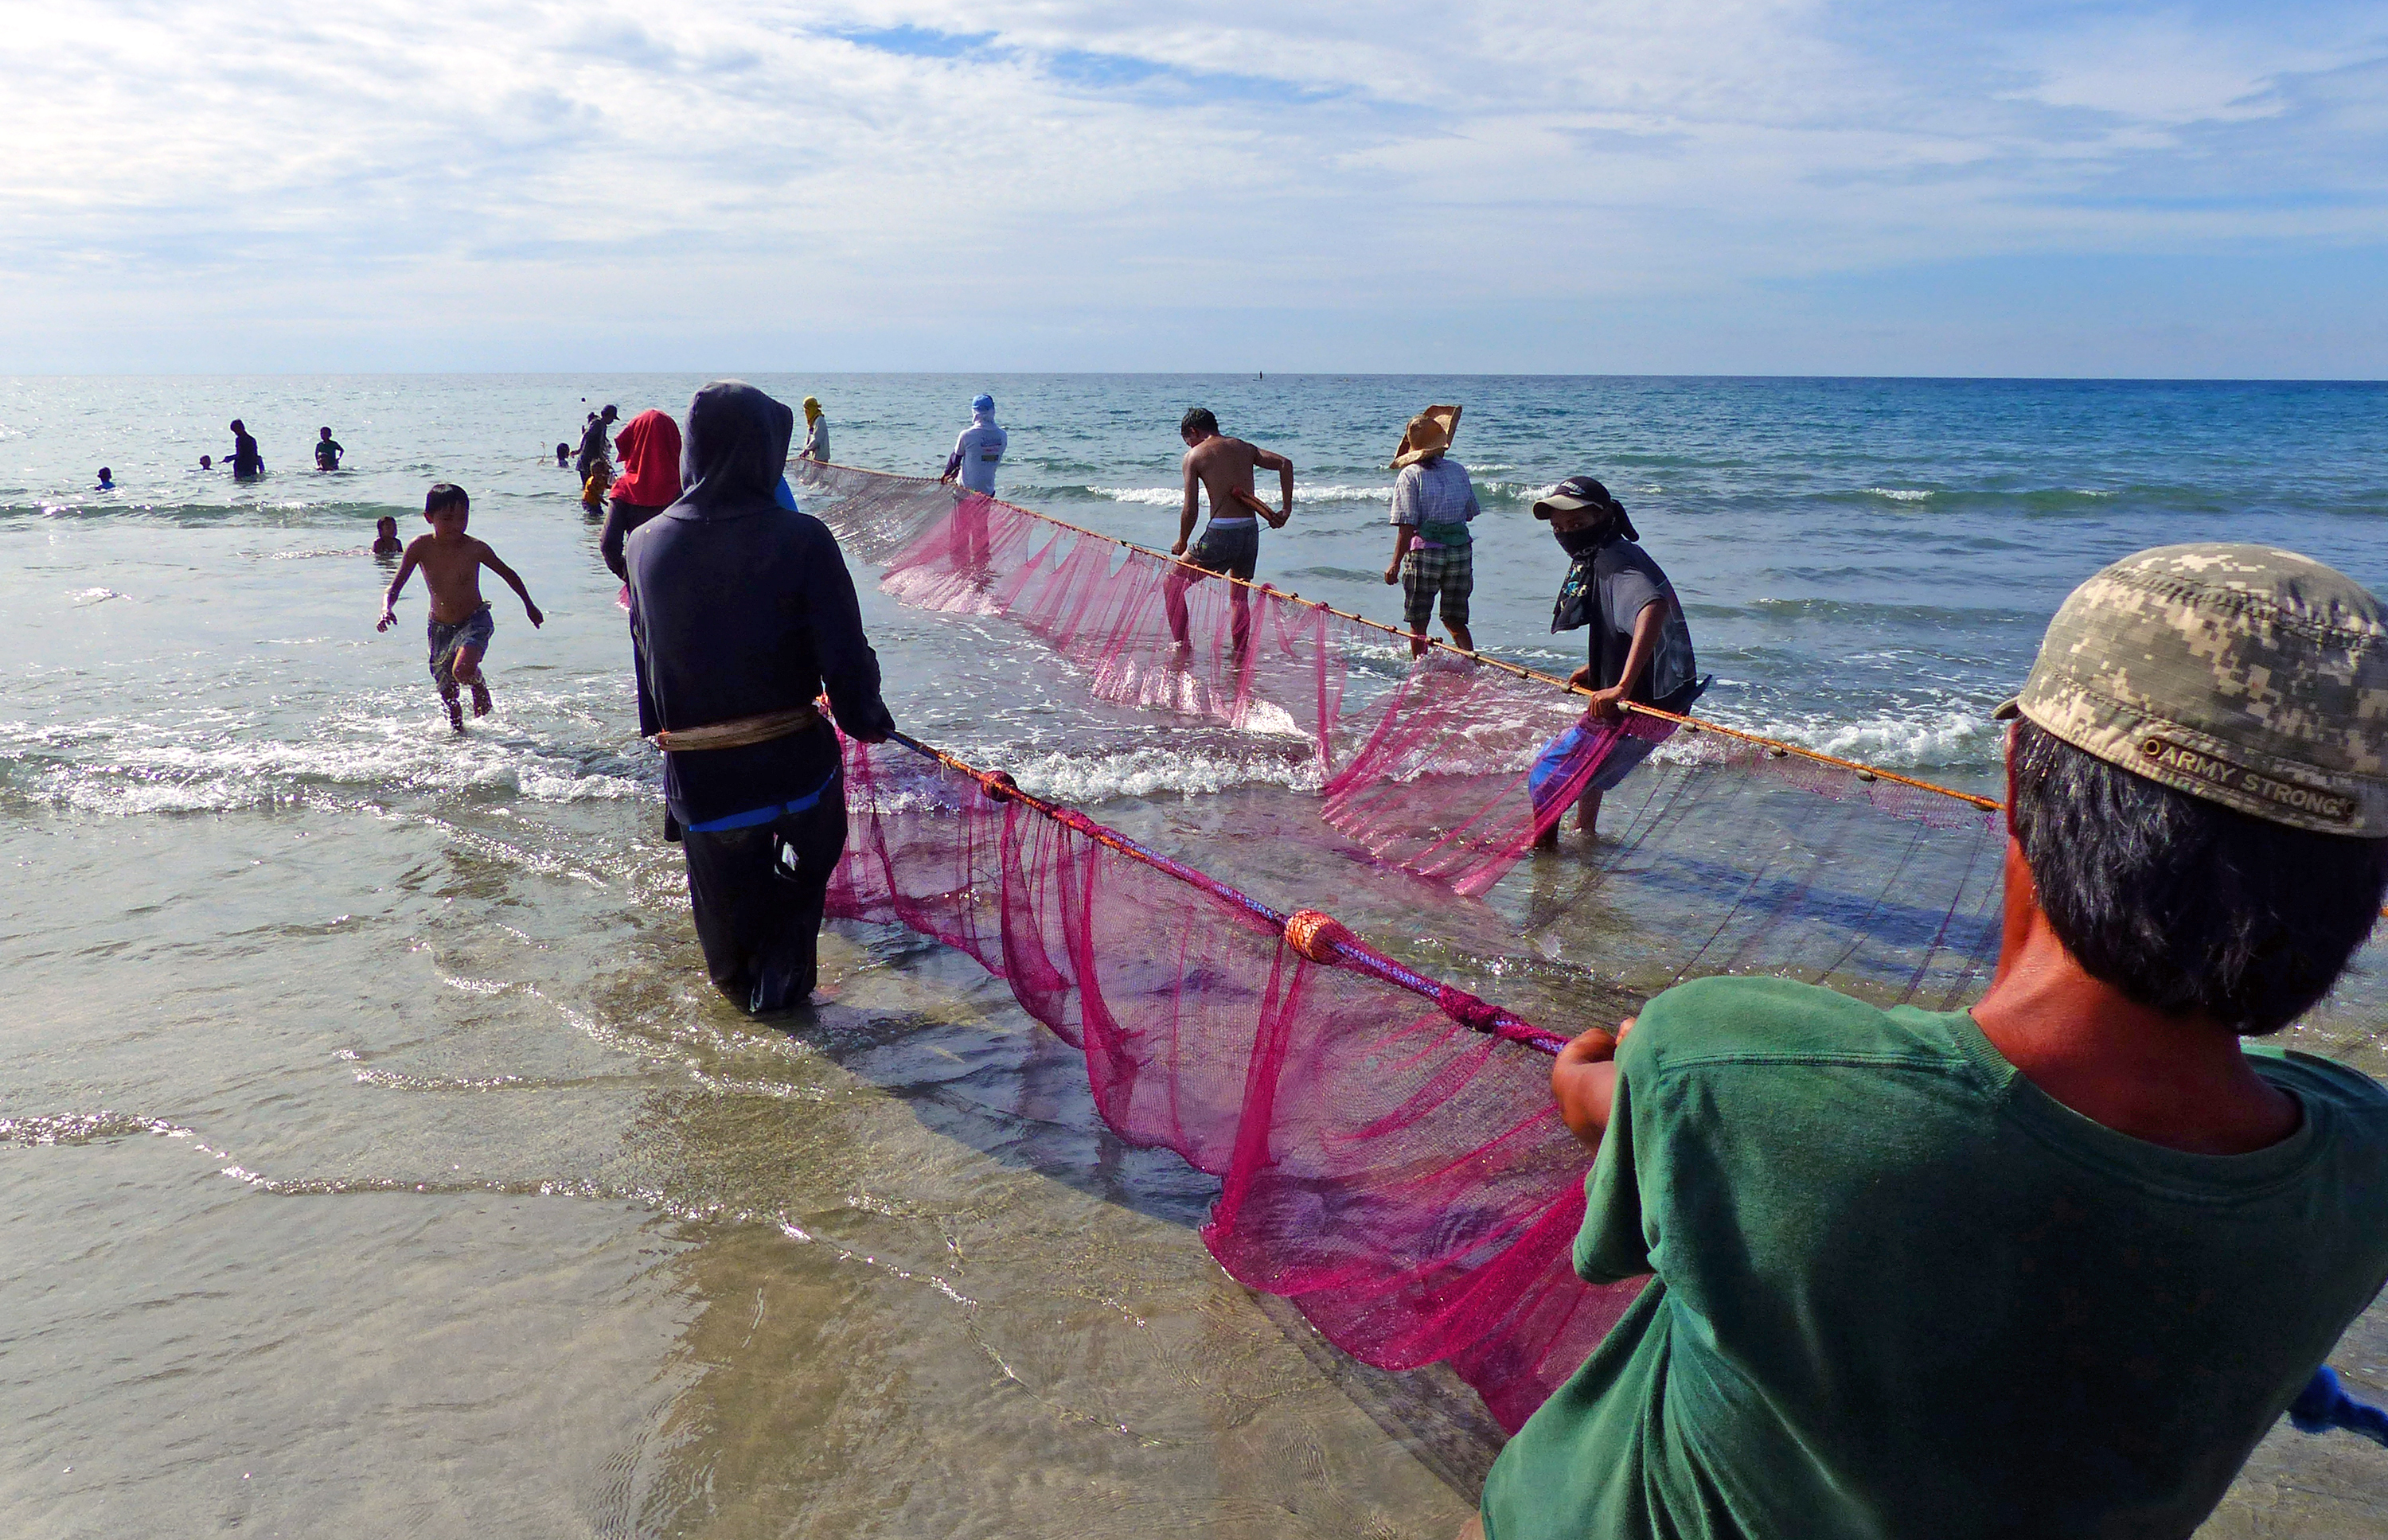 Hauling in the nets. philippines. photo